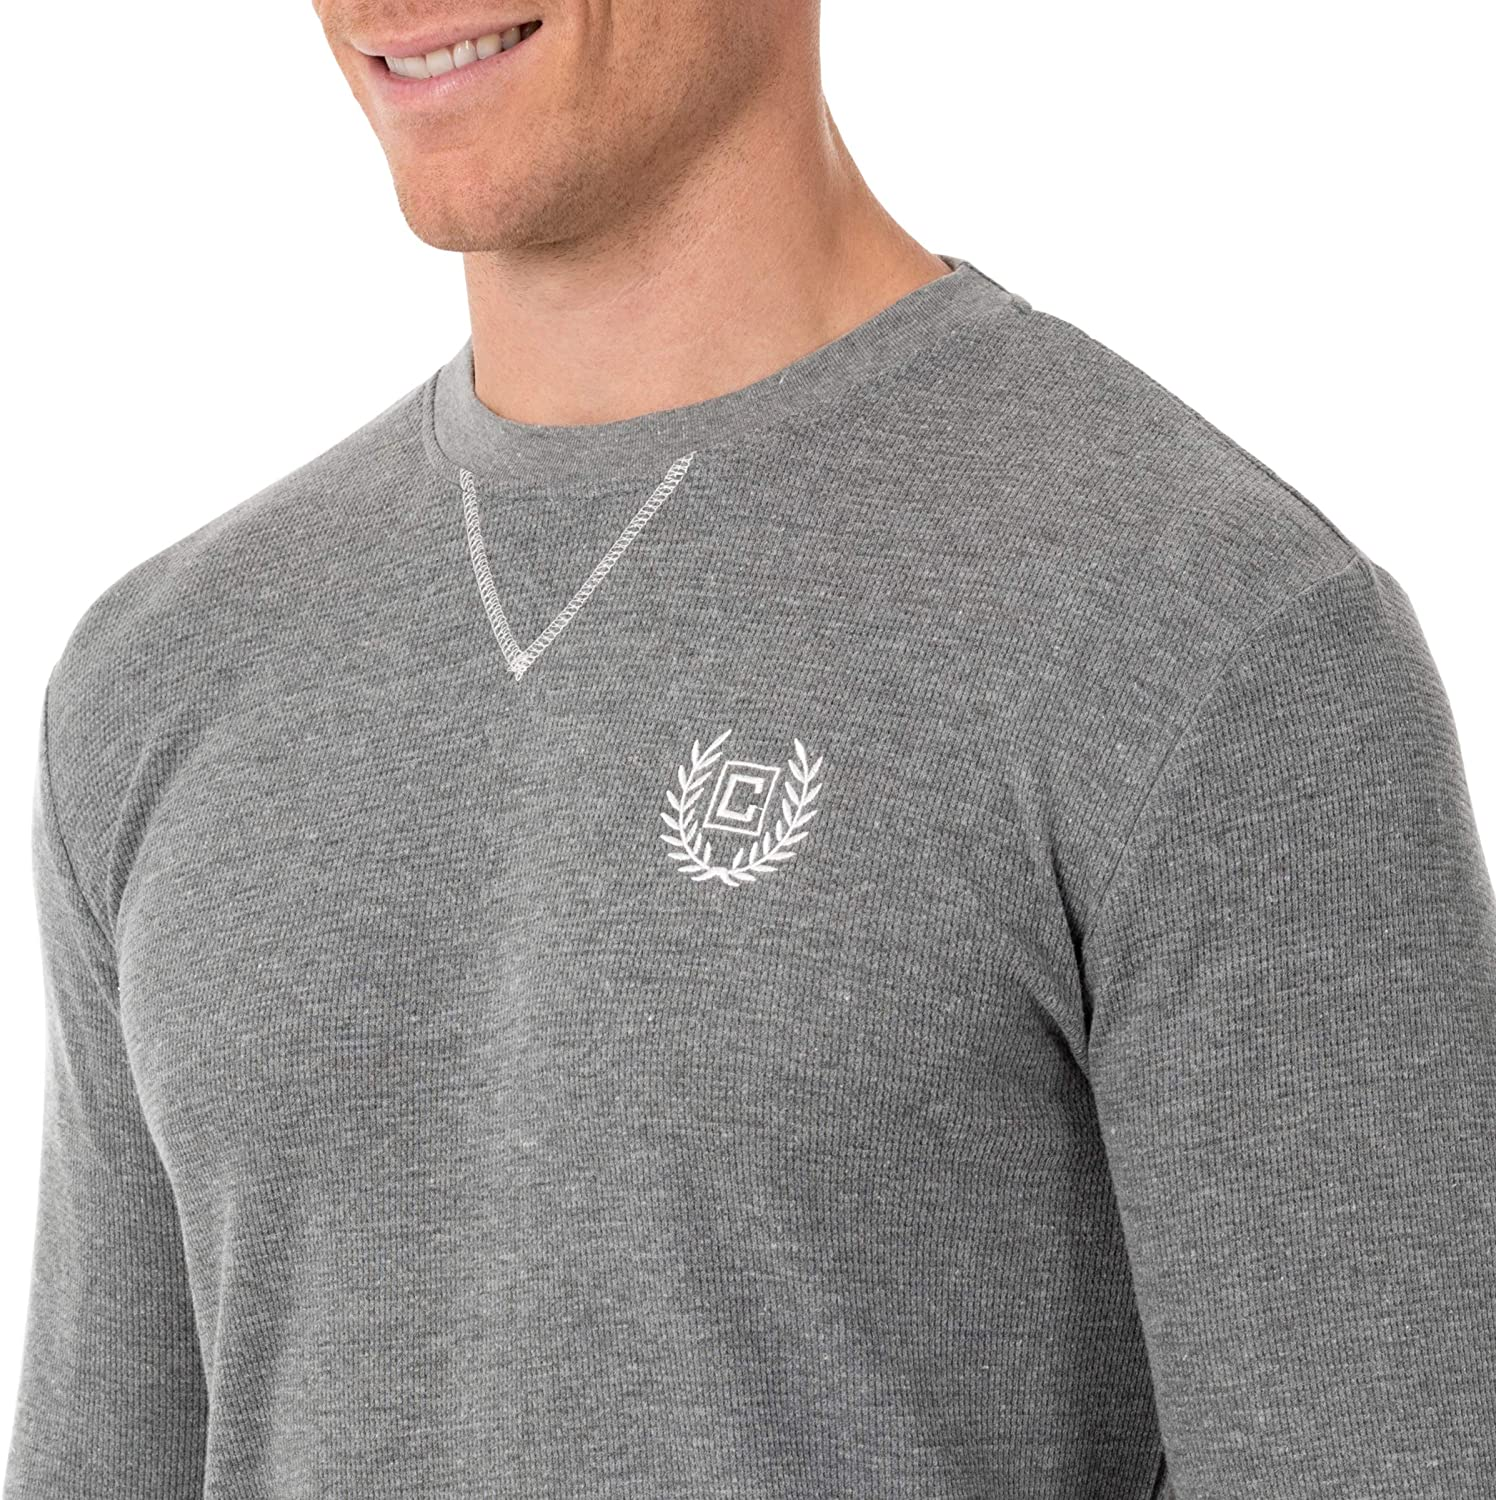 Chaps Mens Waffle Long Sleeve Crew Neck Top